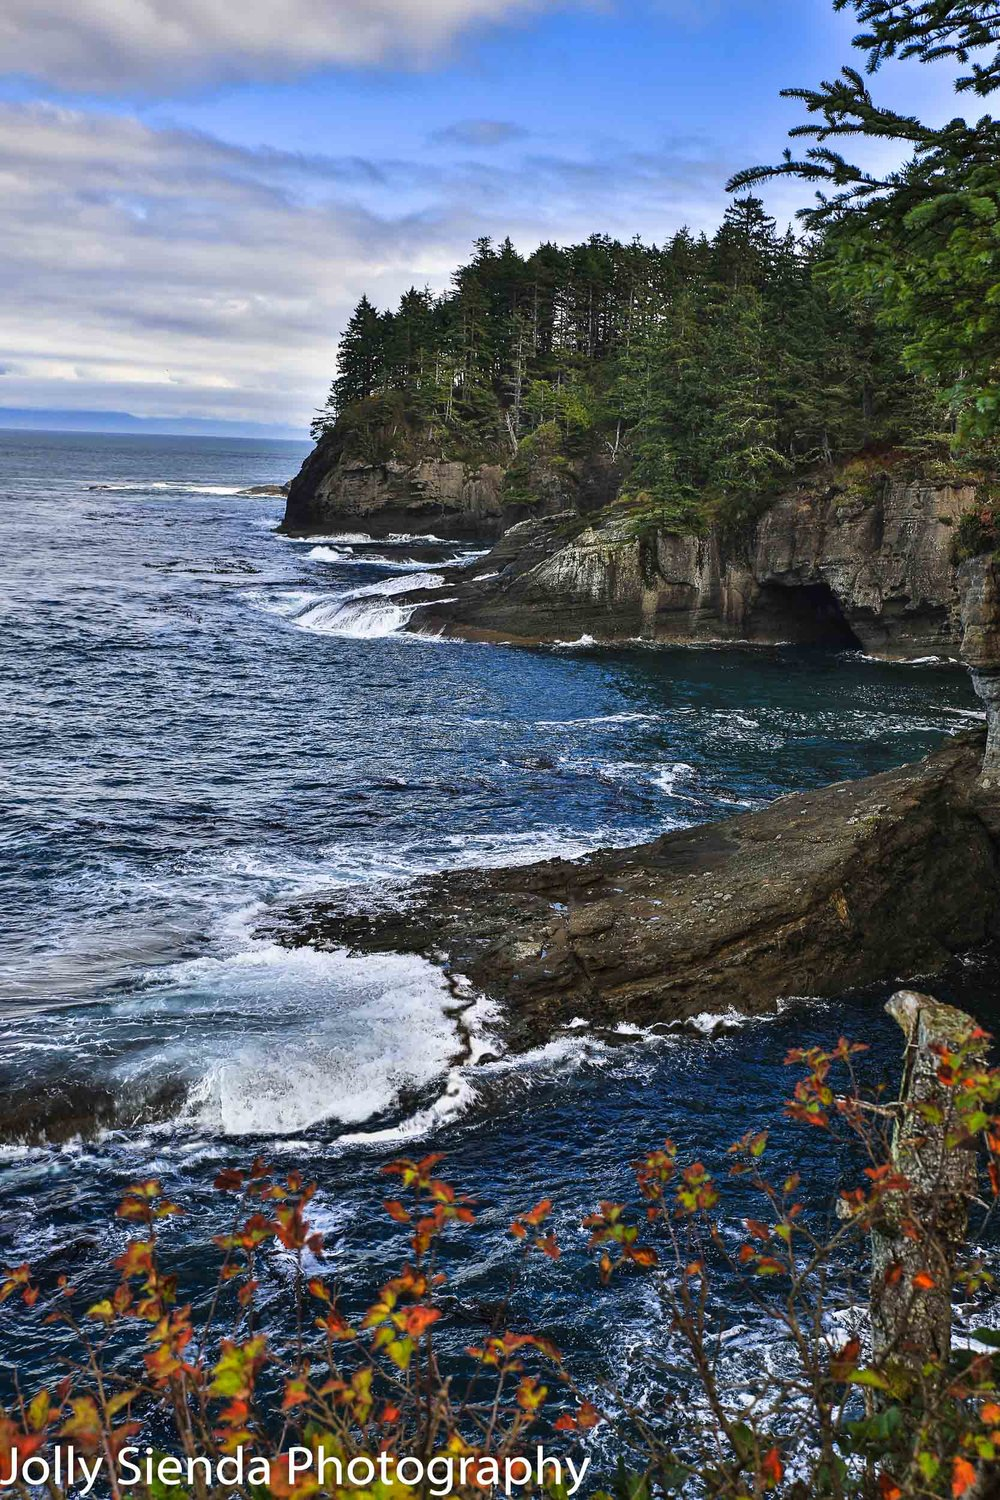 Caves and bluffs at Cape Flattery with water crashing onto the b